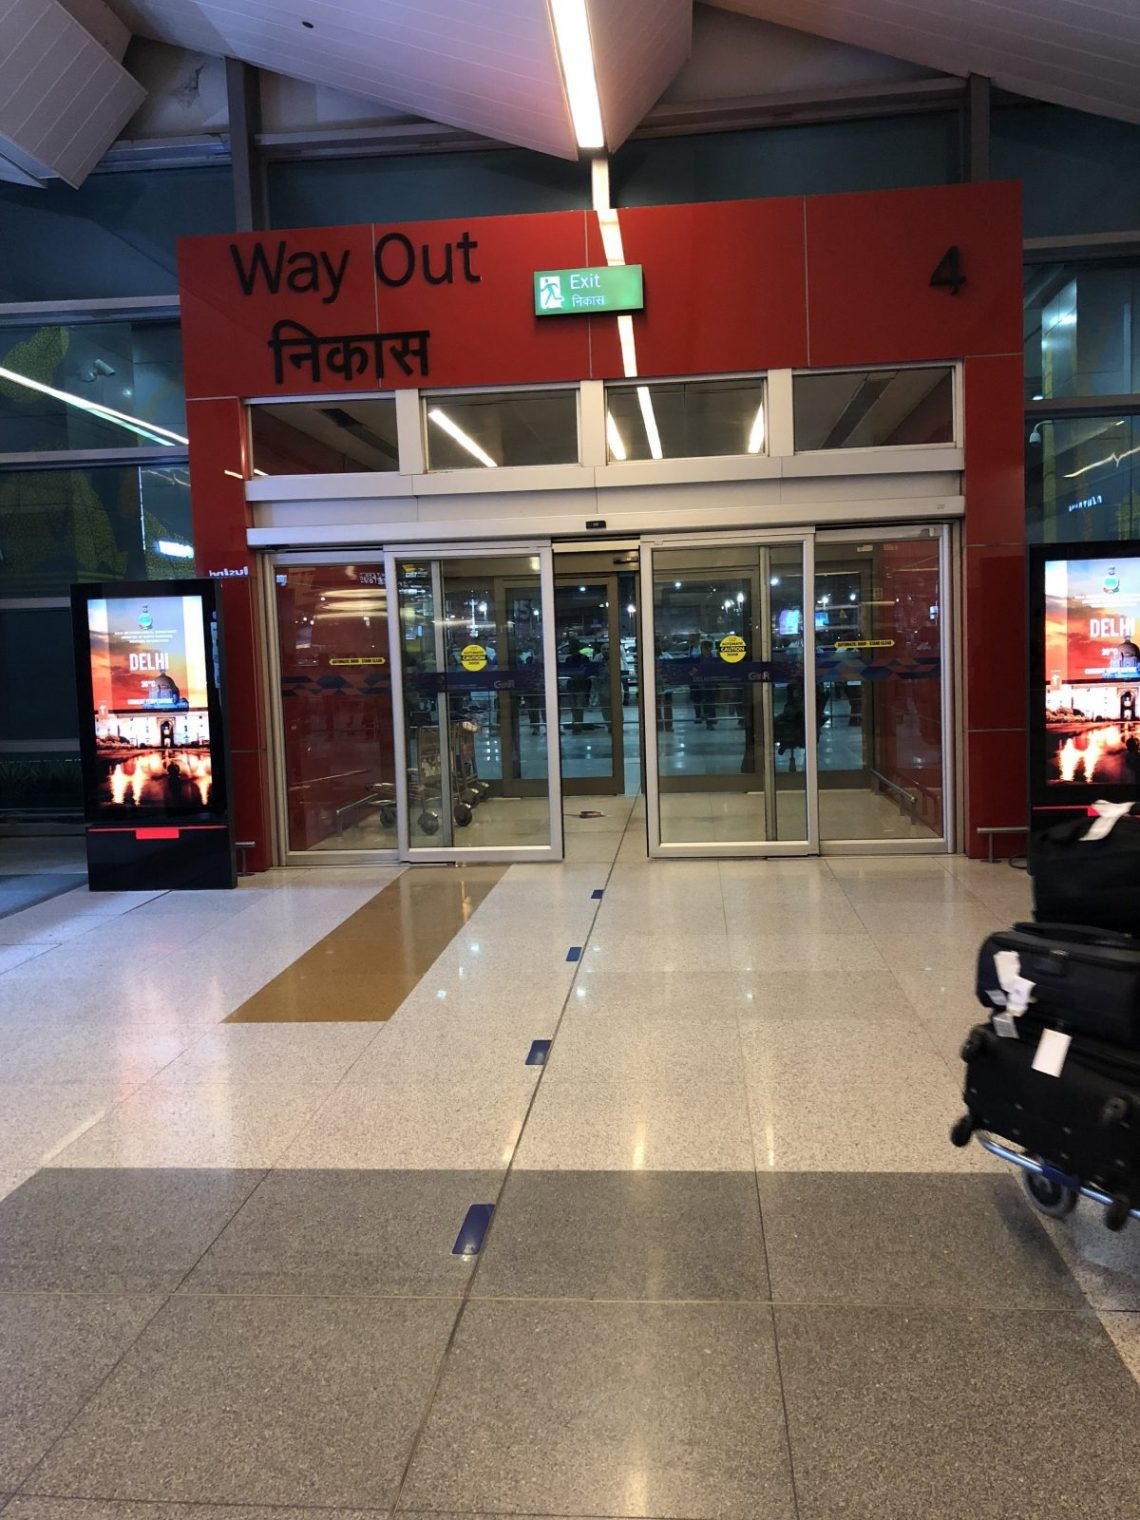 Final Exit from the arrival halls at Delhi's International airport